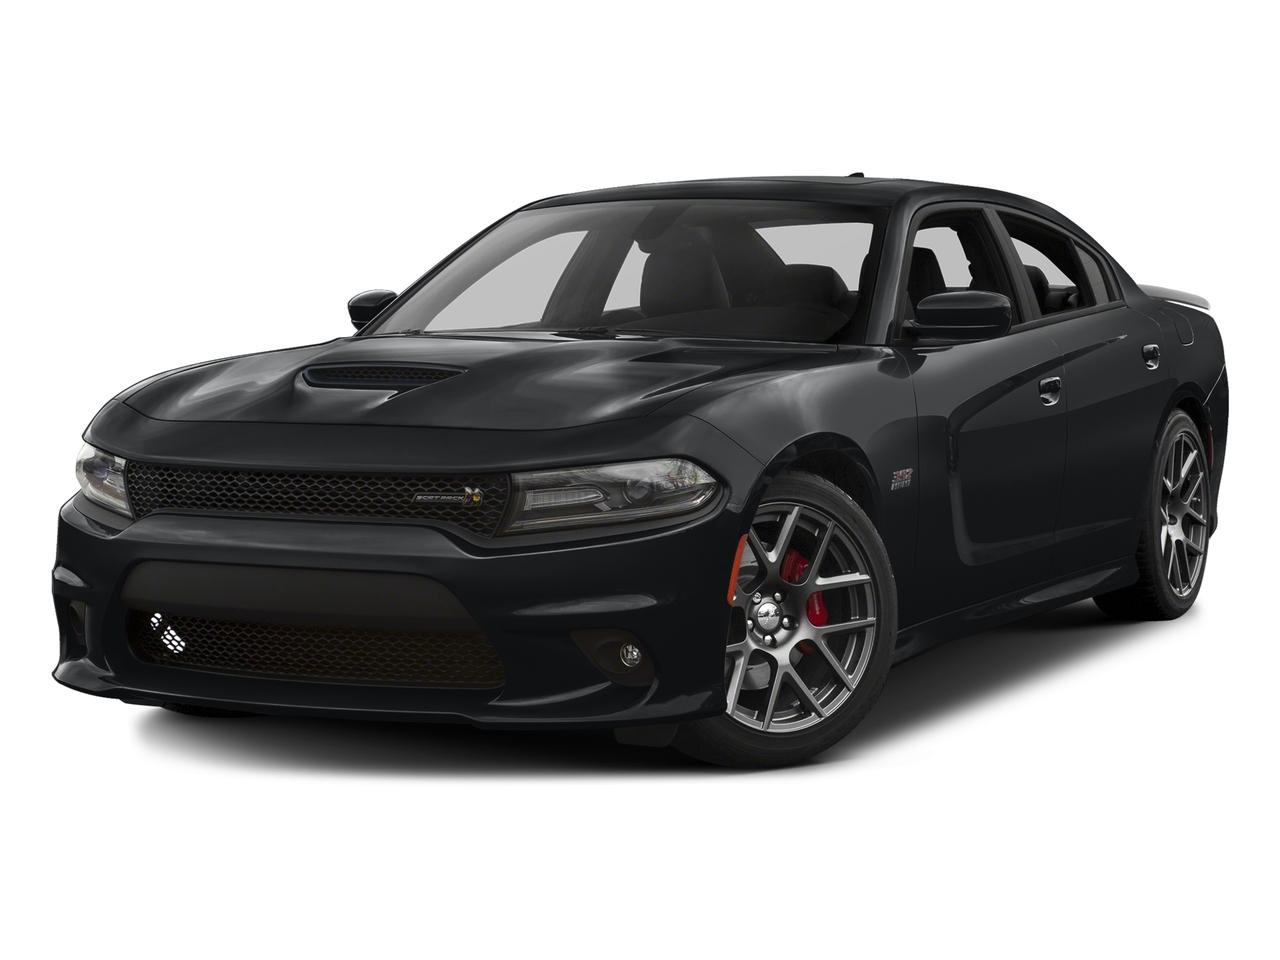 2016 Dodge Charger Vehicle Photo in Greeley, CO 80634